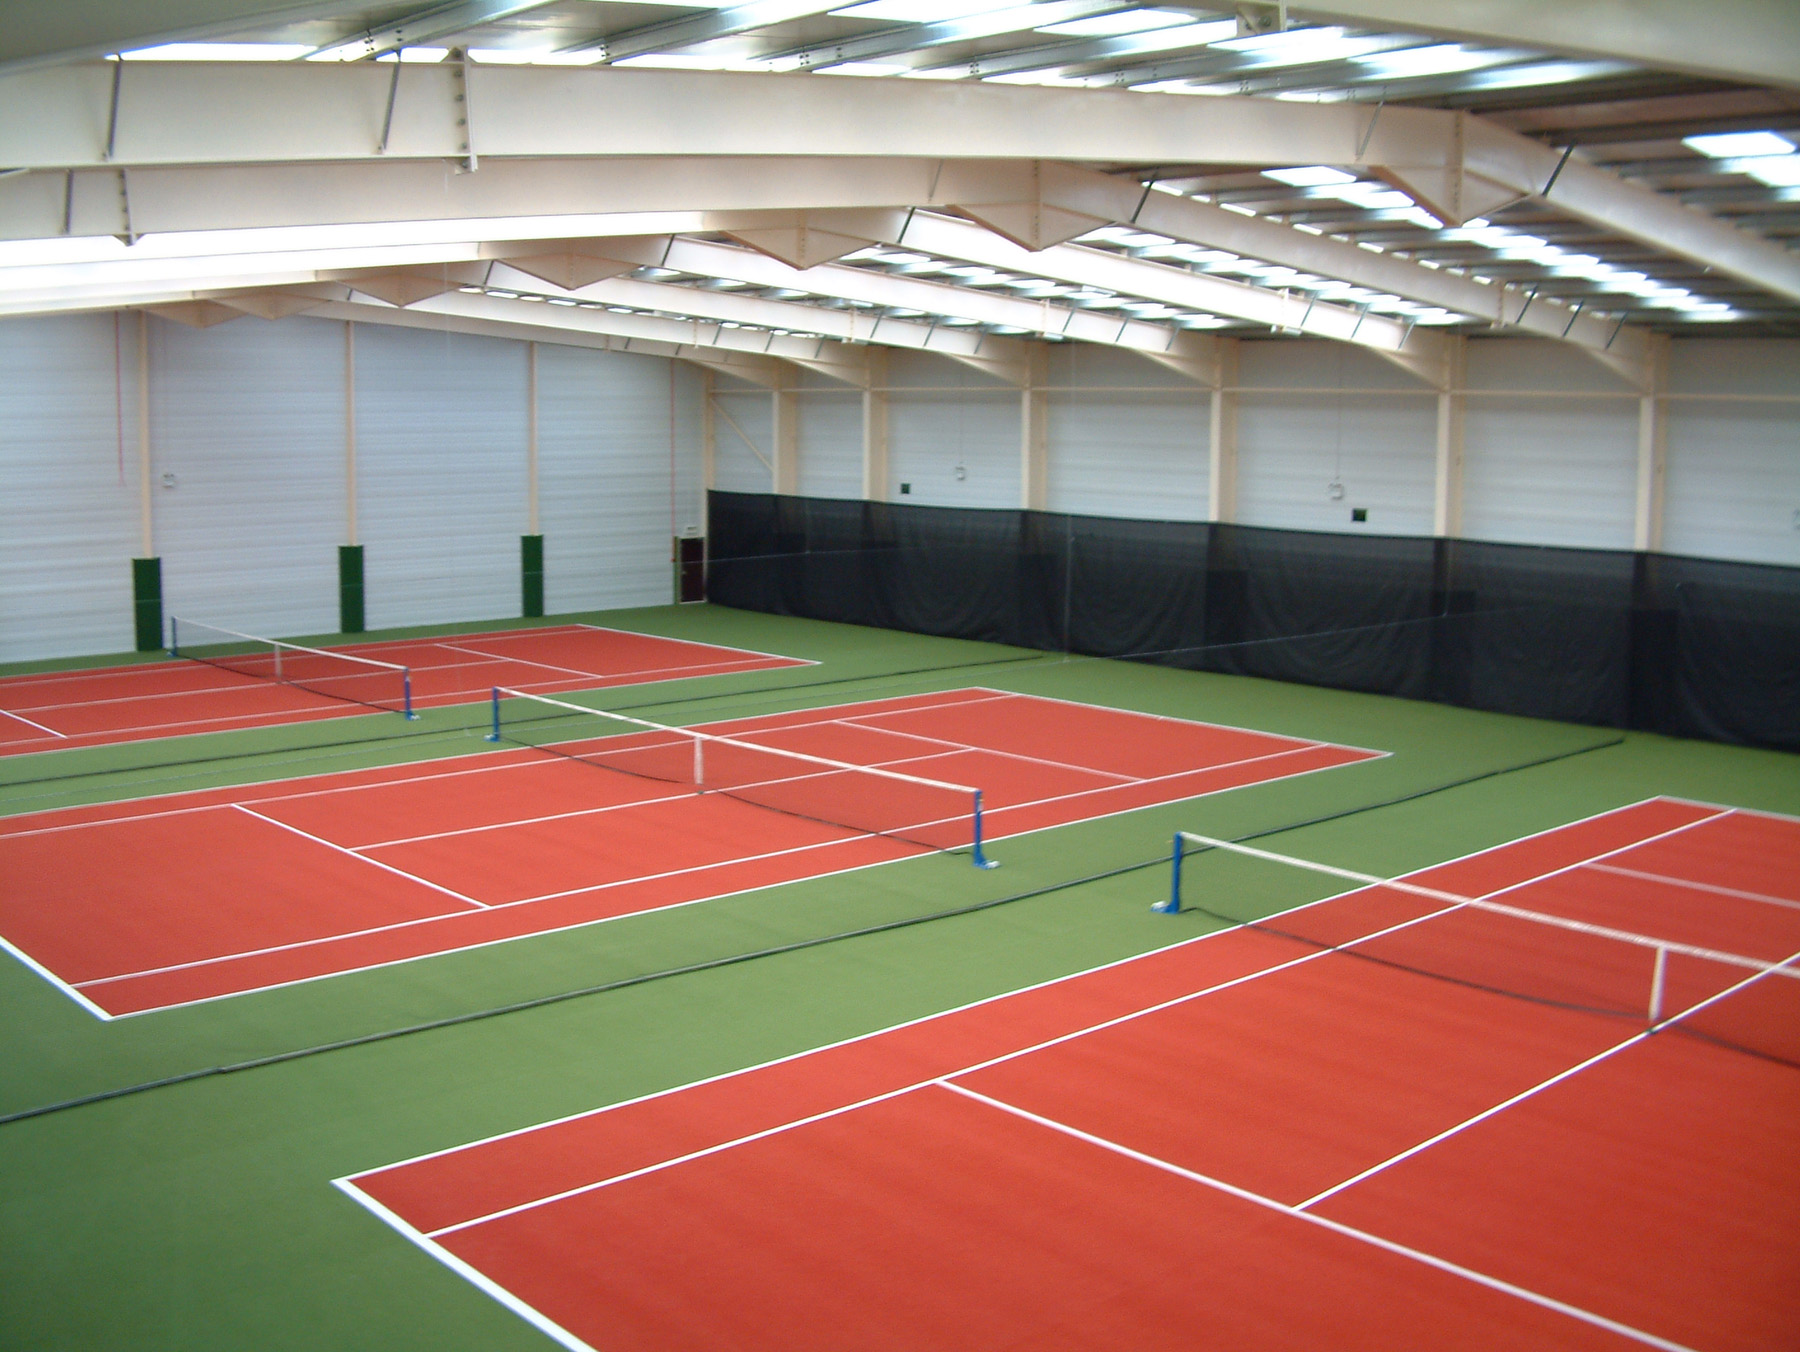 ETC Sports Surfaces are experts in the design, installation and maintenance of needle punched carpets